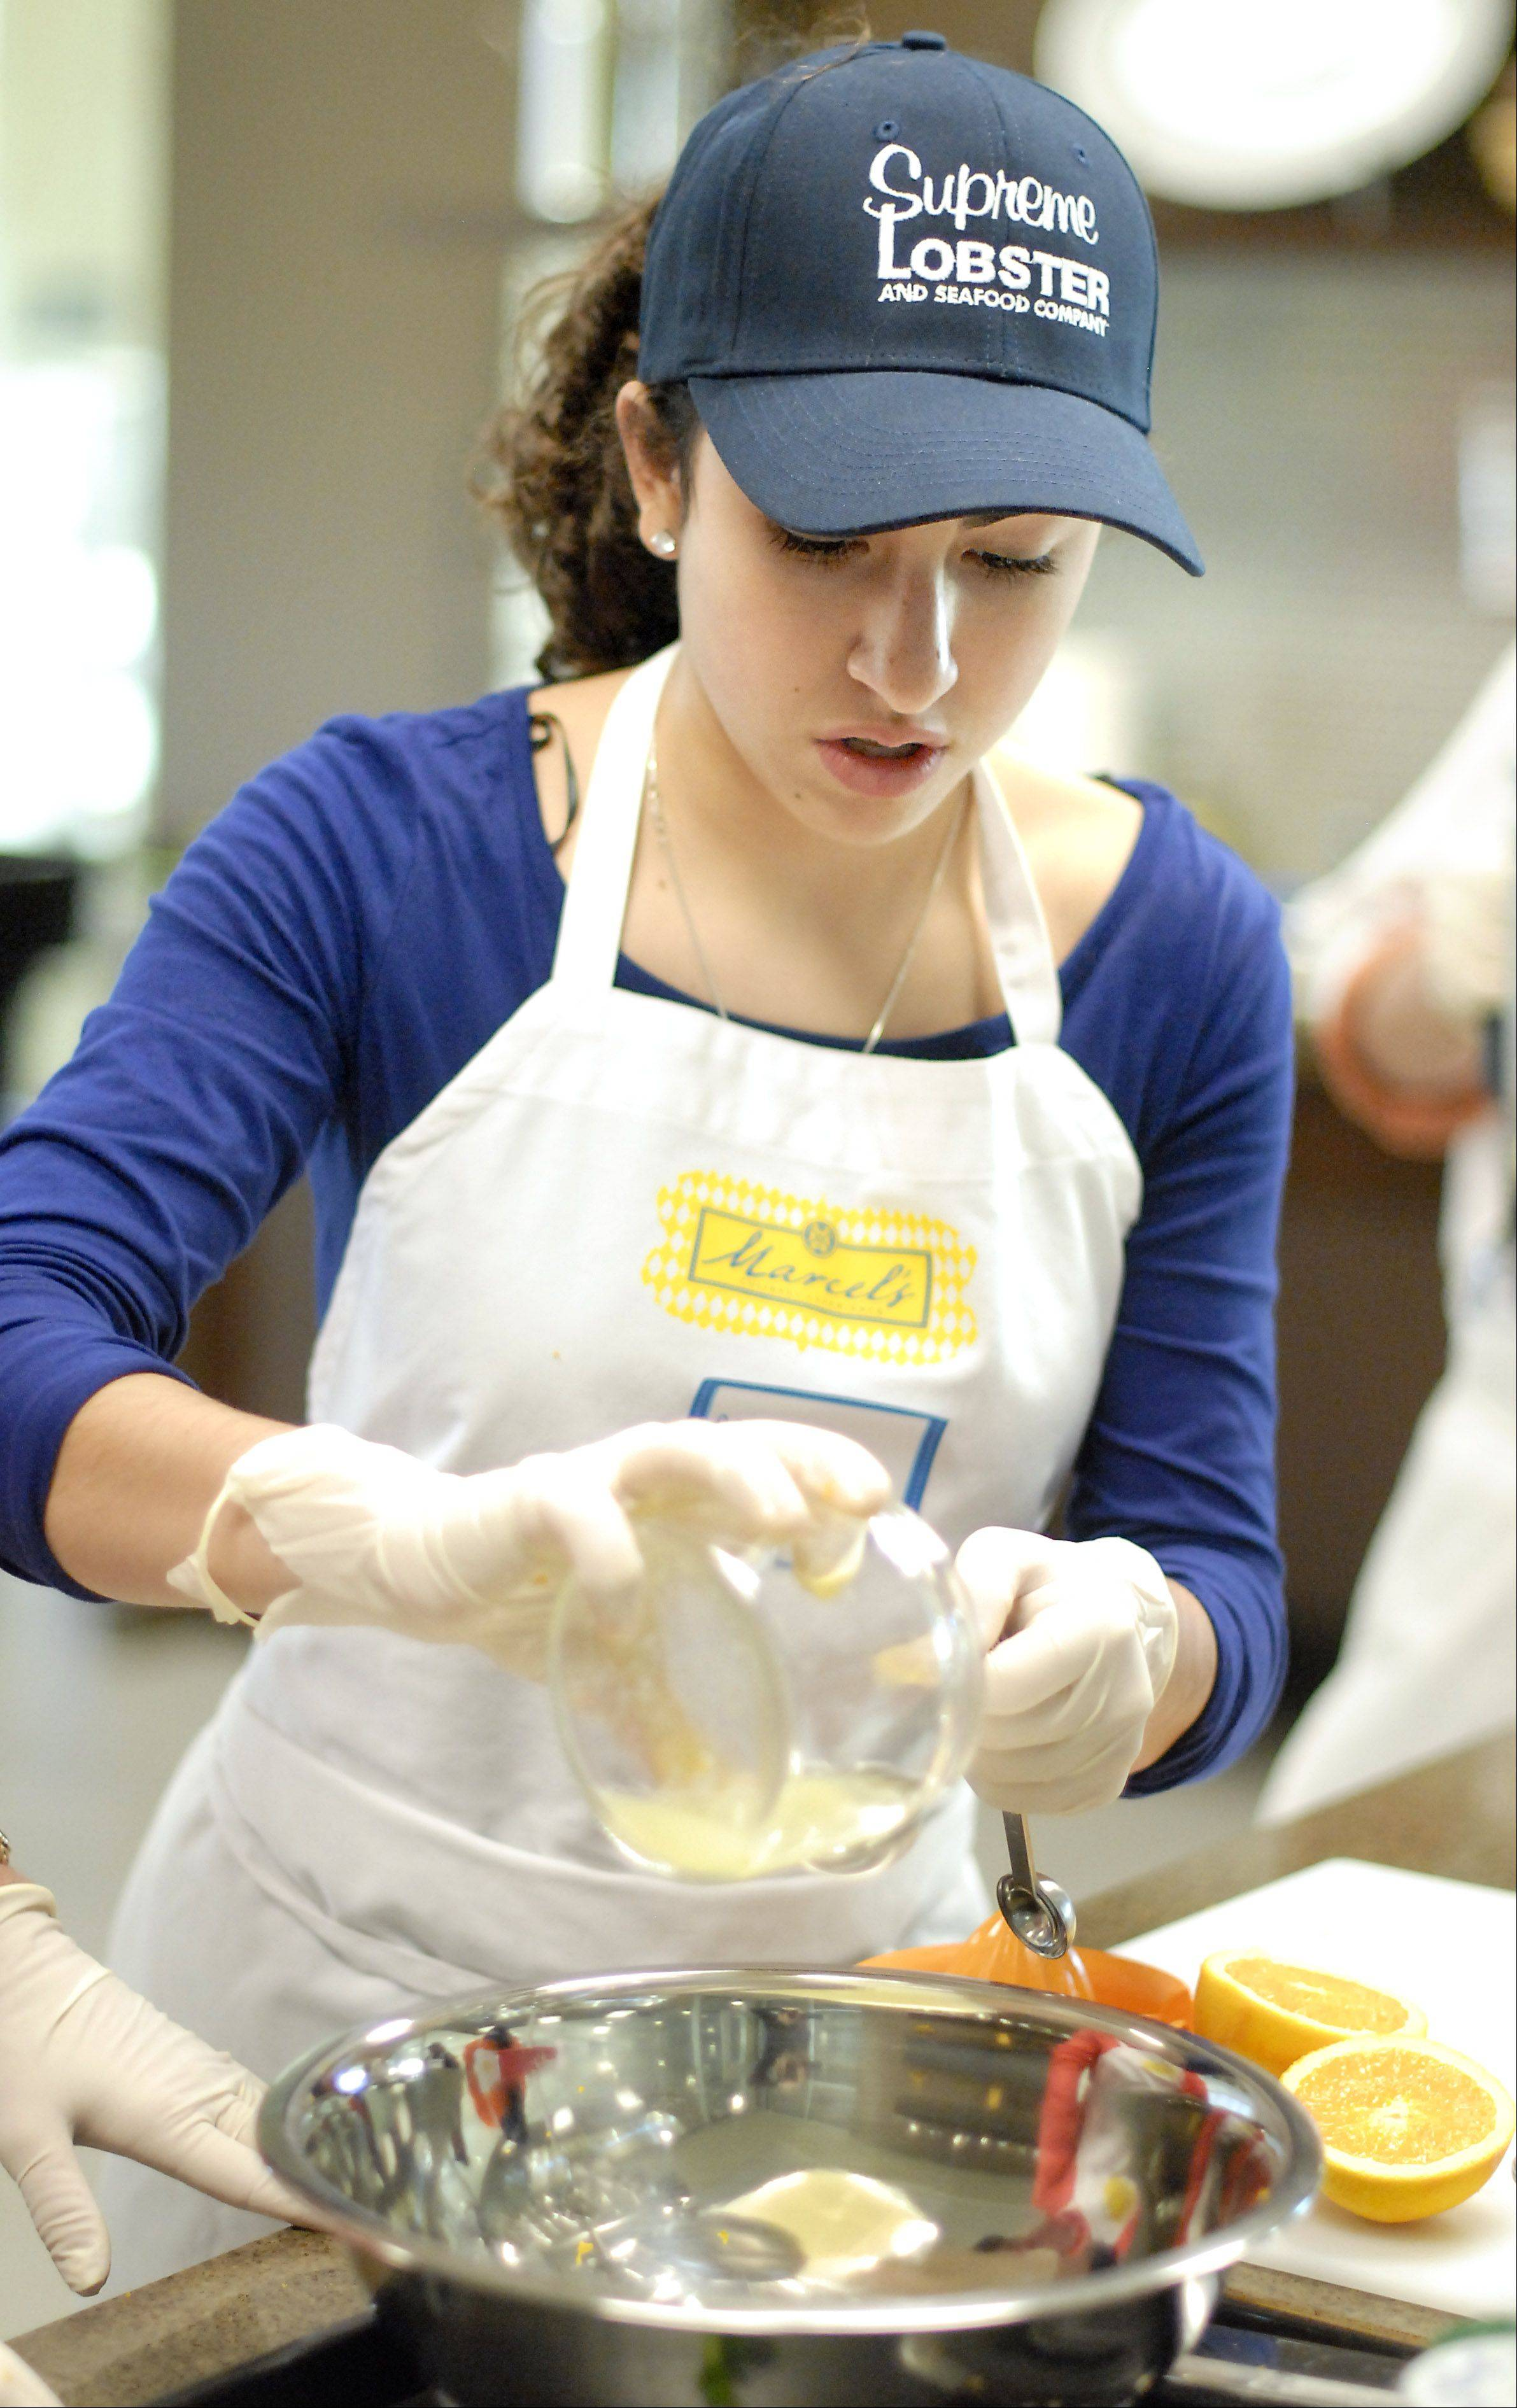 Volunteer Mia Gerace, 14, measures lemon and lime juice for a fish recipe in the Roquette America kitchen in Geneva.